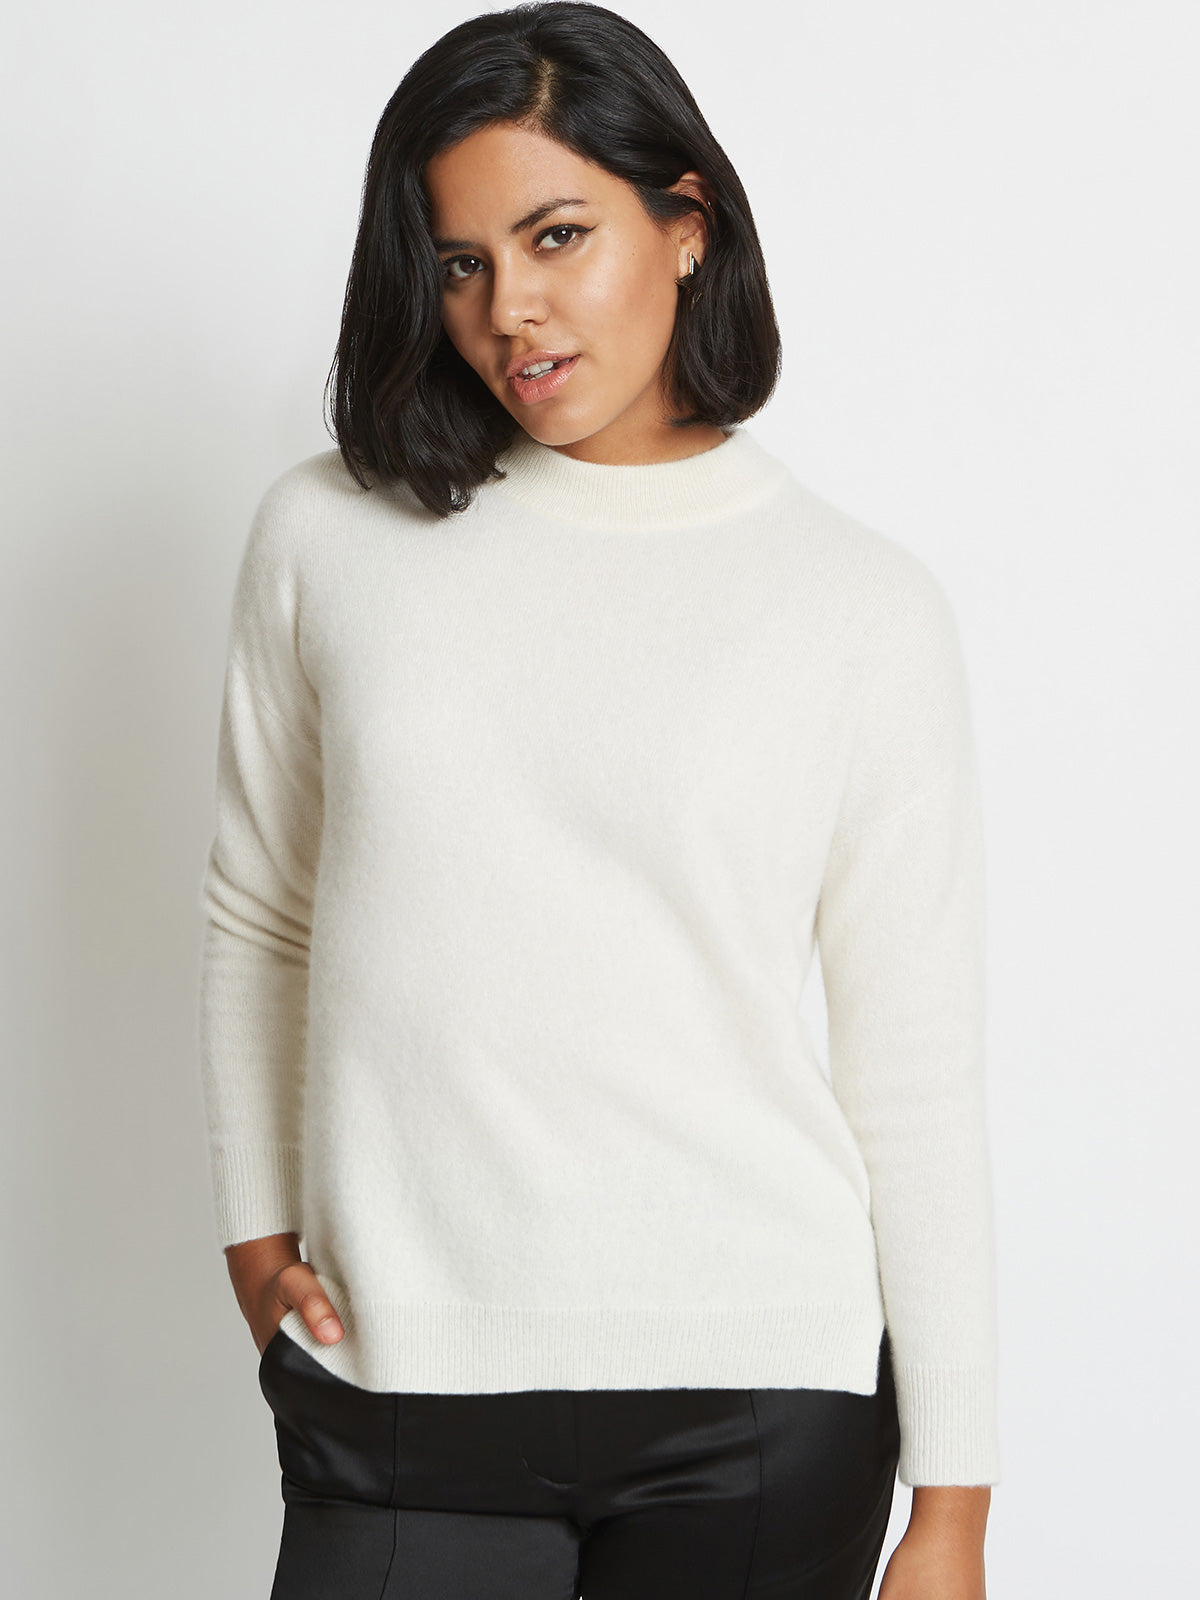 Riley 3D Knitted Cashmere Crewneck Sweater | Sugar